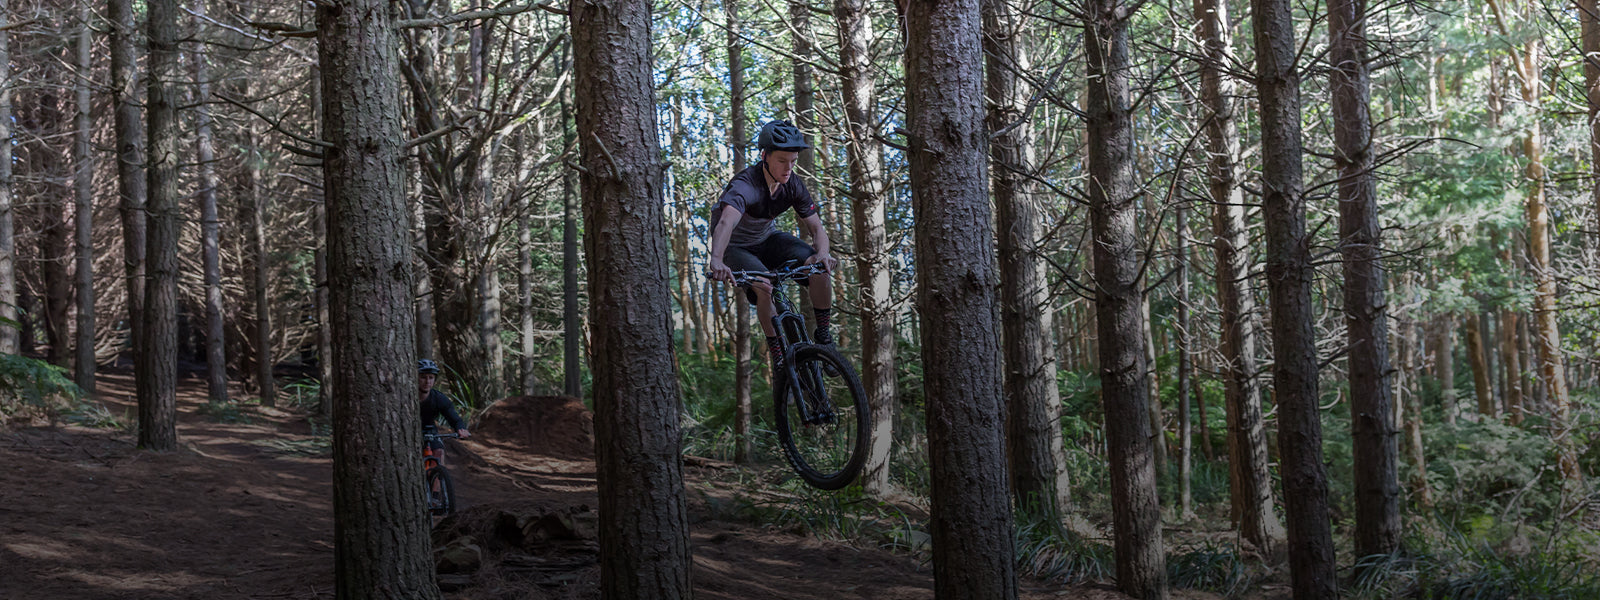 Beginners Guide to Mountain Biking - 7 Tips to get you started